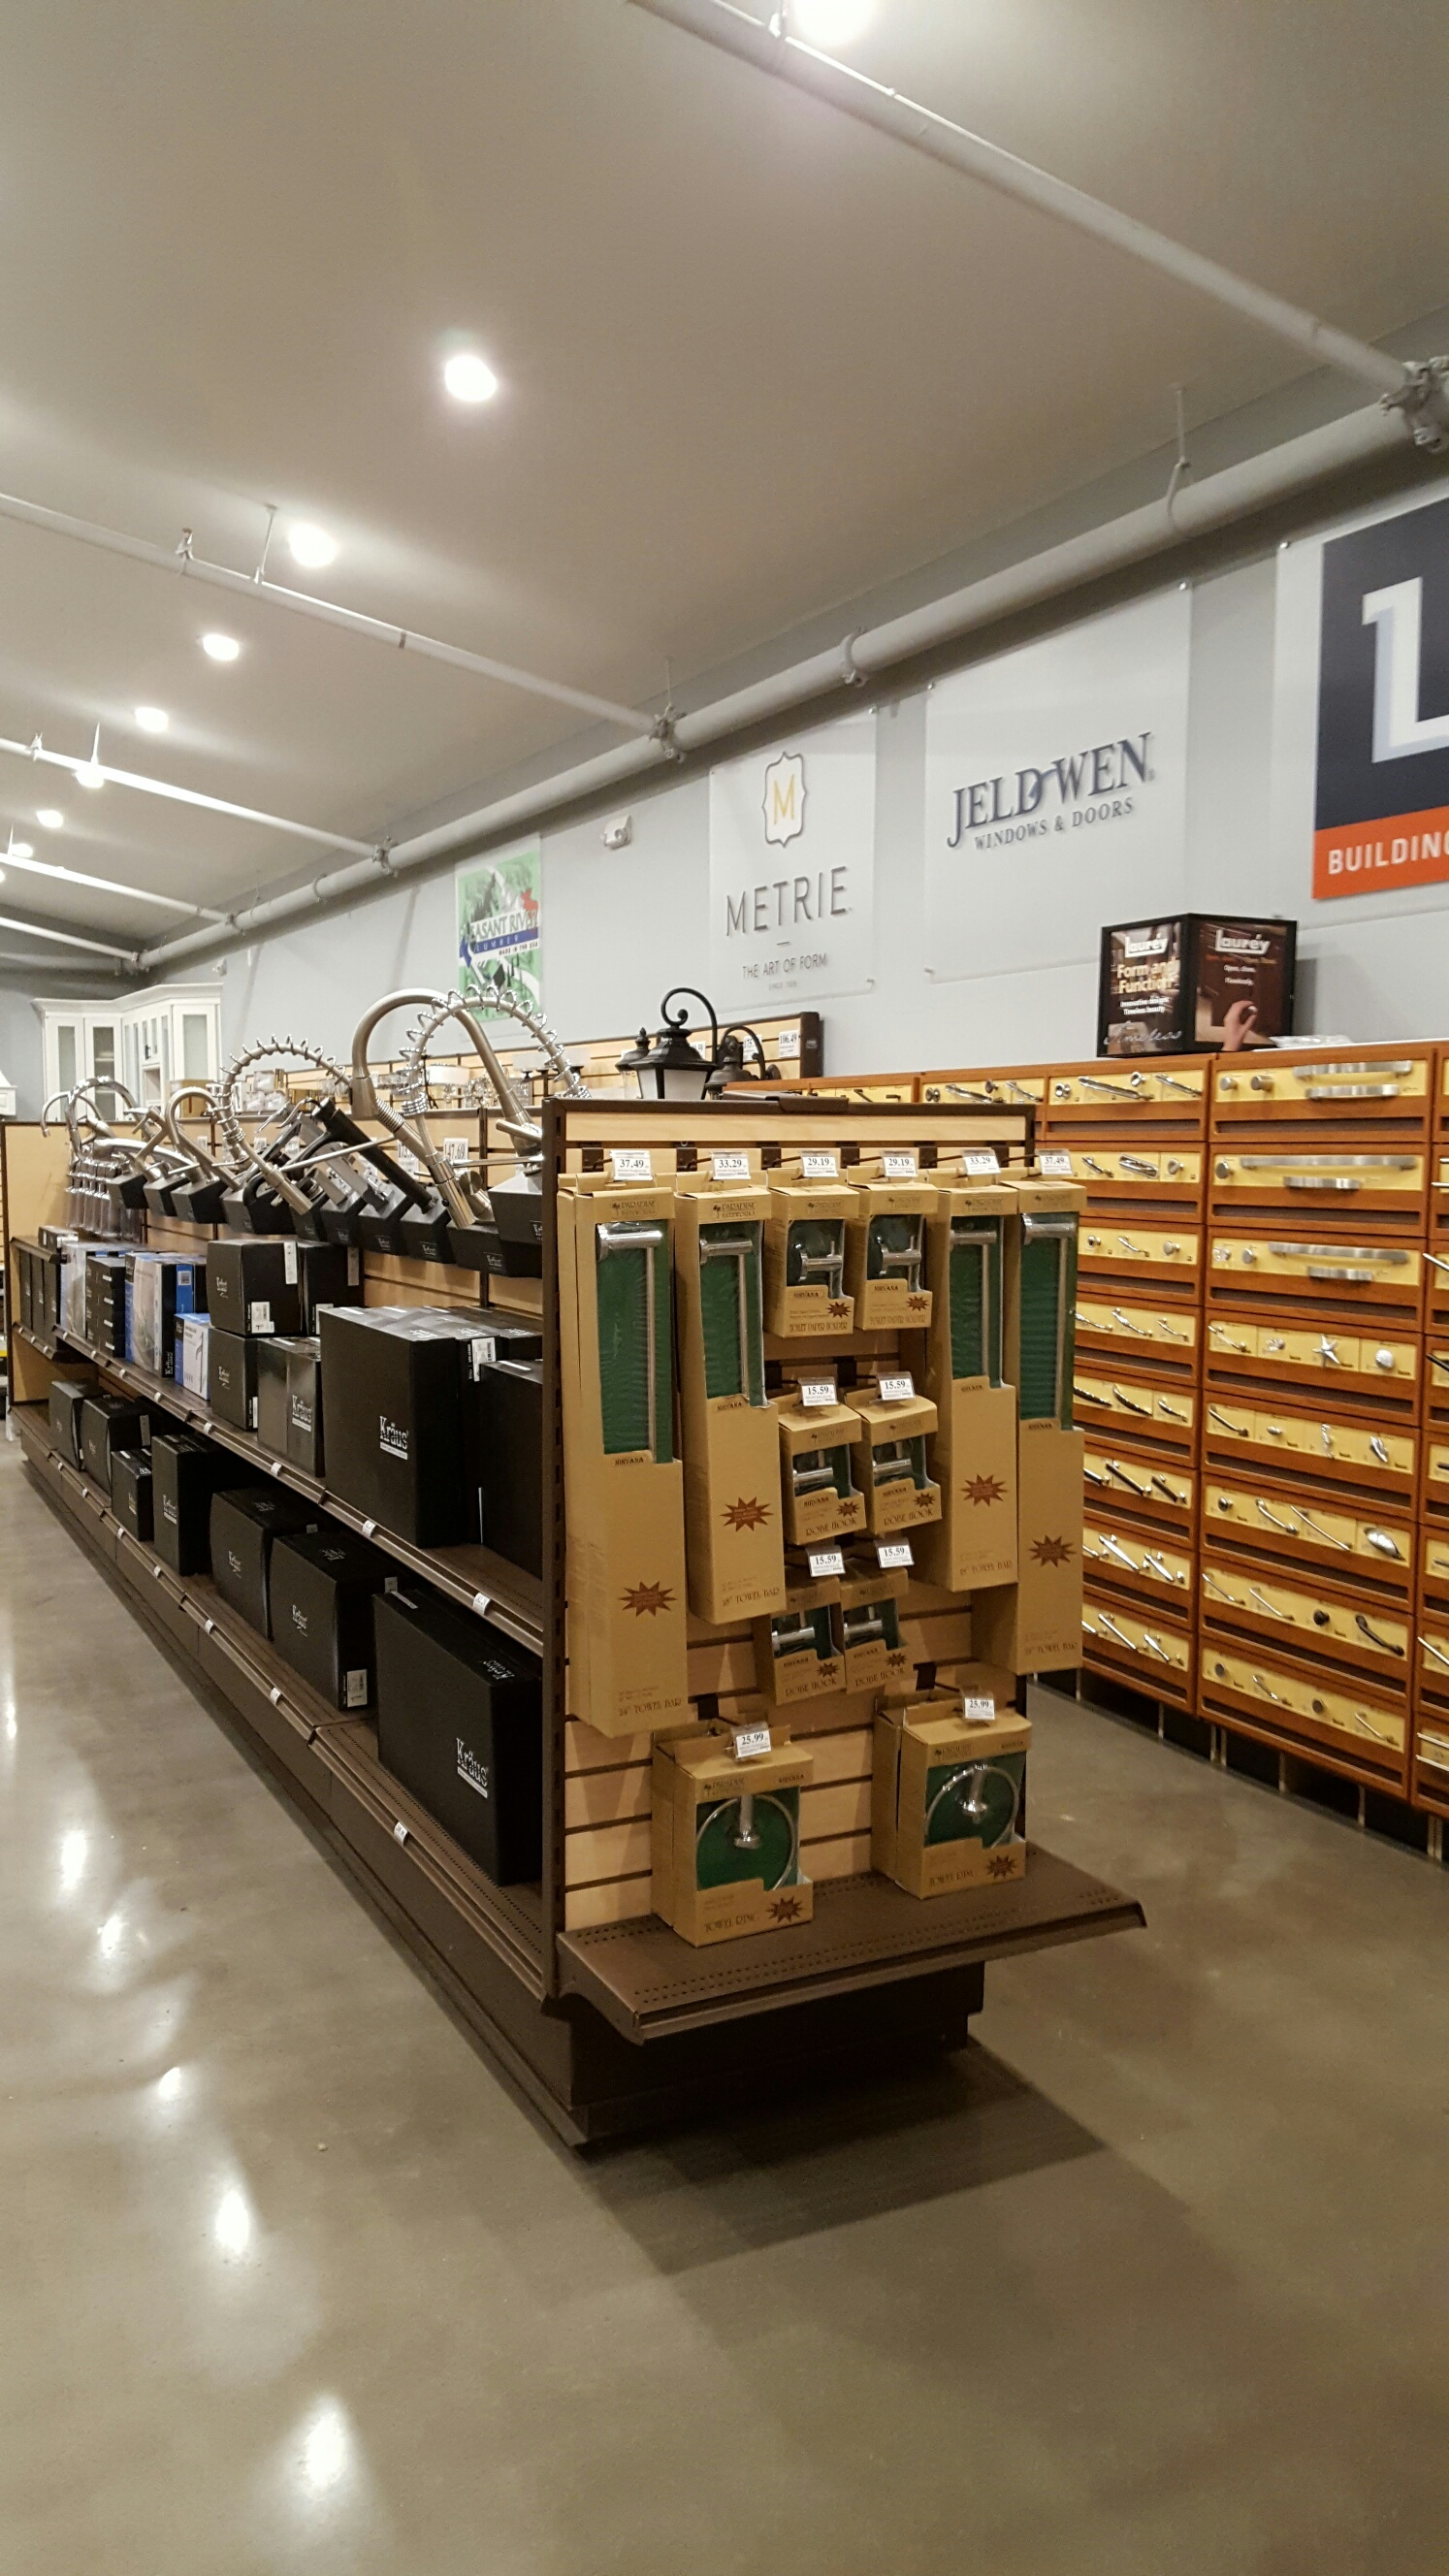 84 Lumber Opens First Store In Boston As New England Footprint Continues To Grow